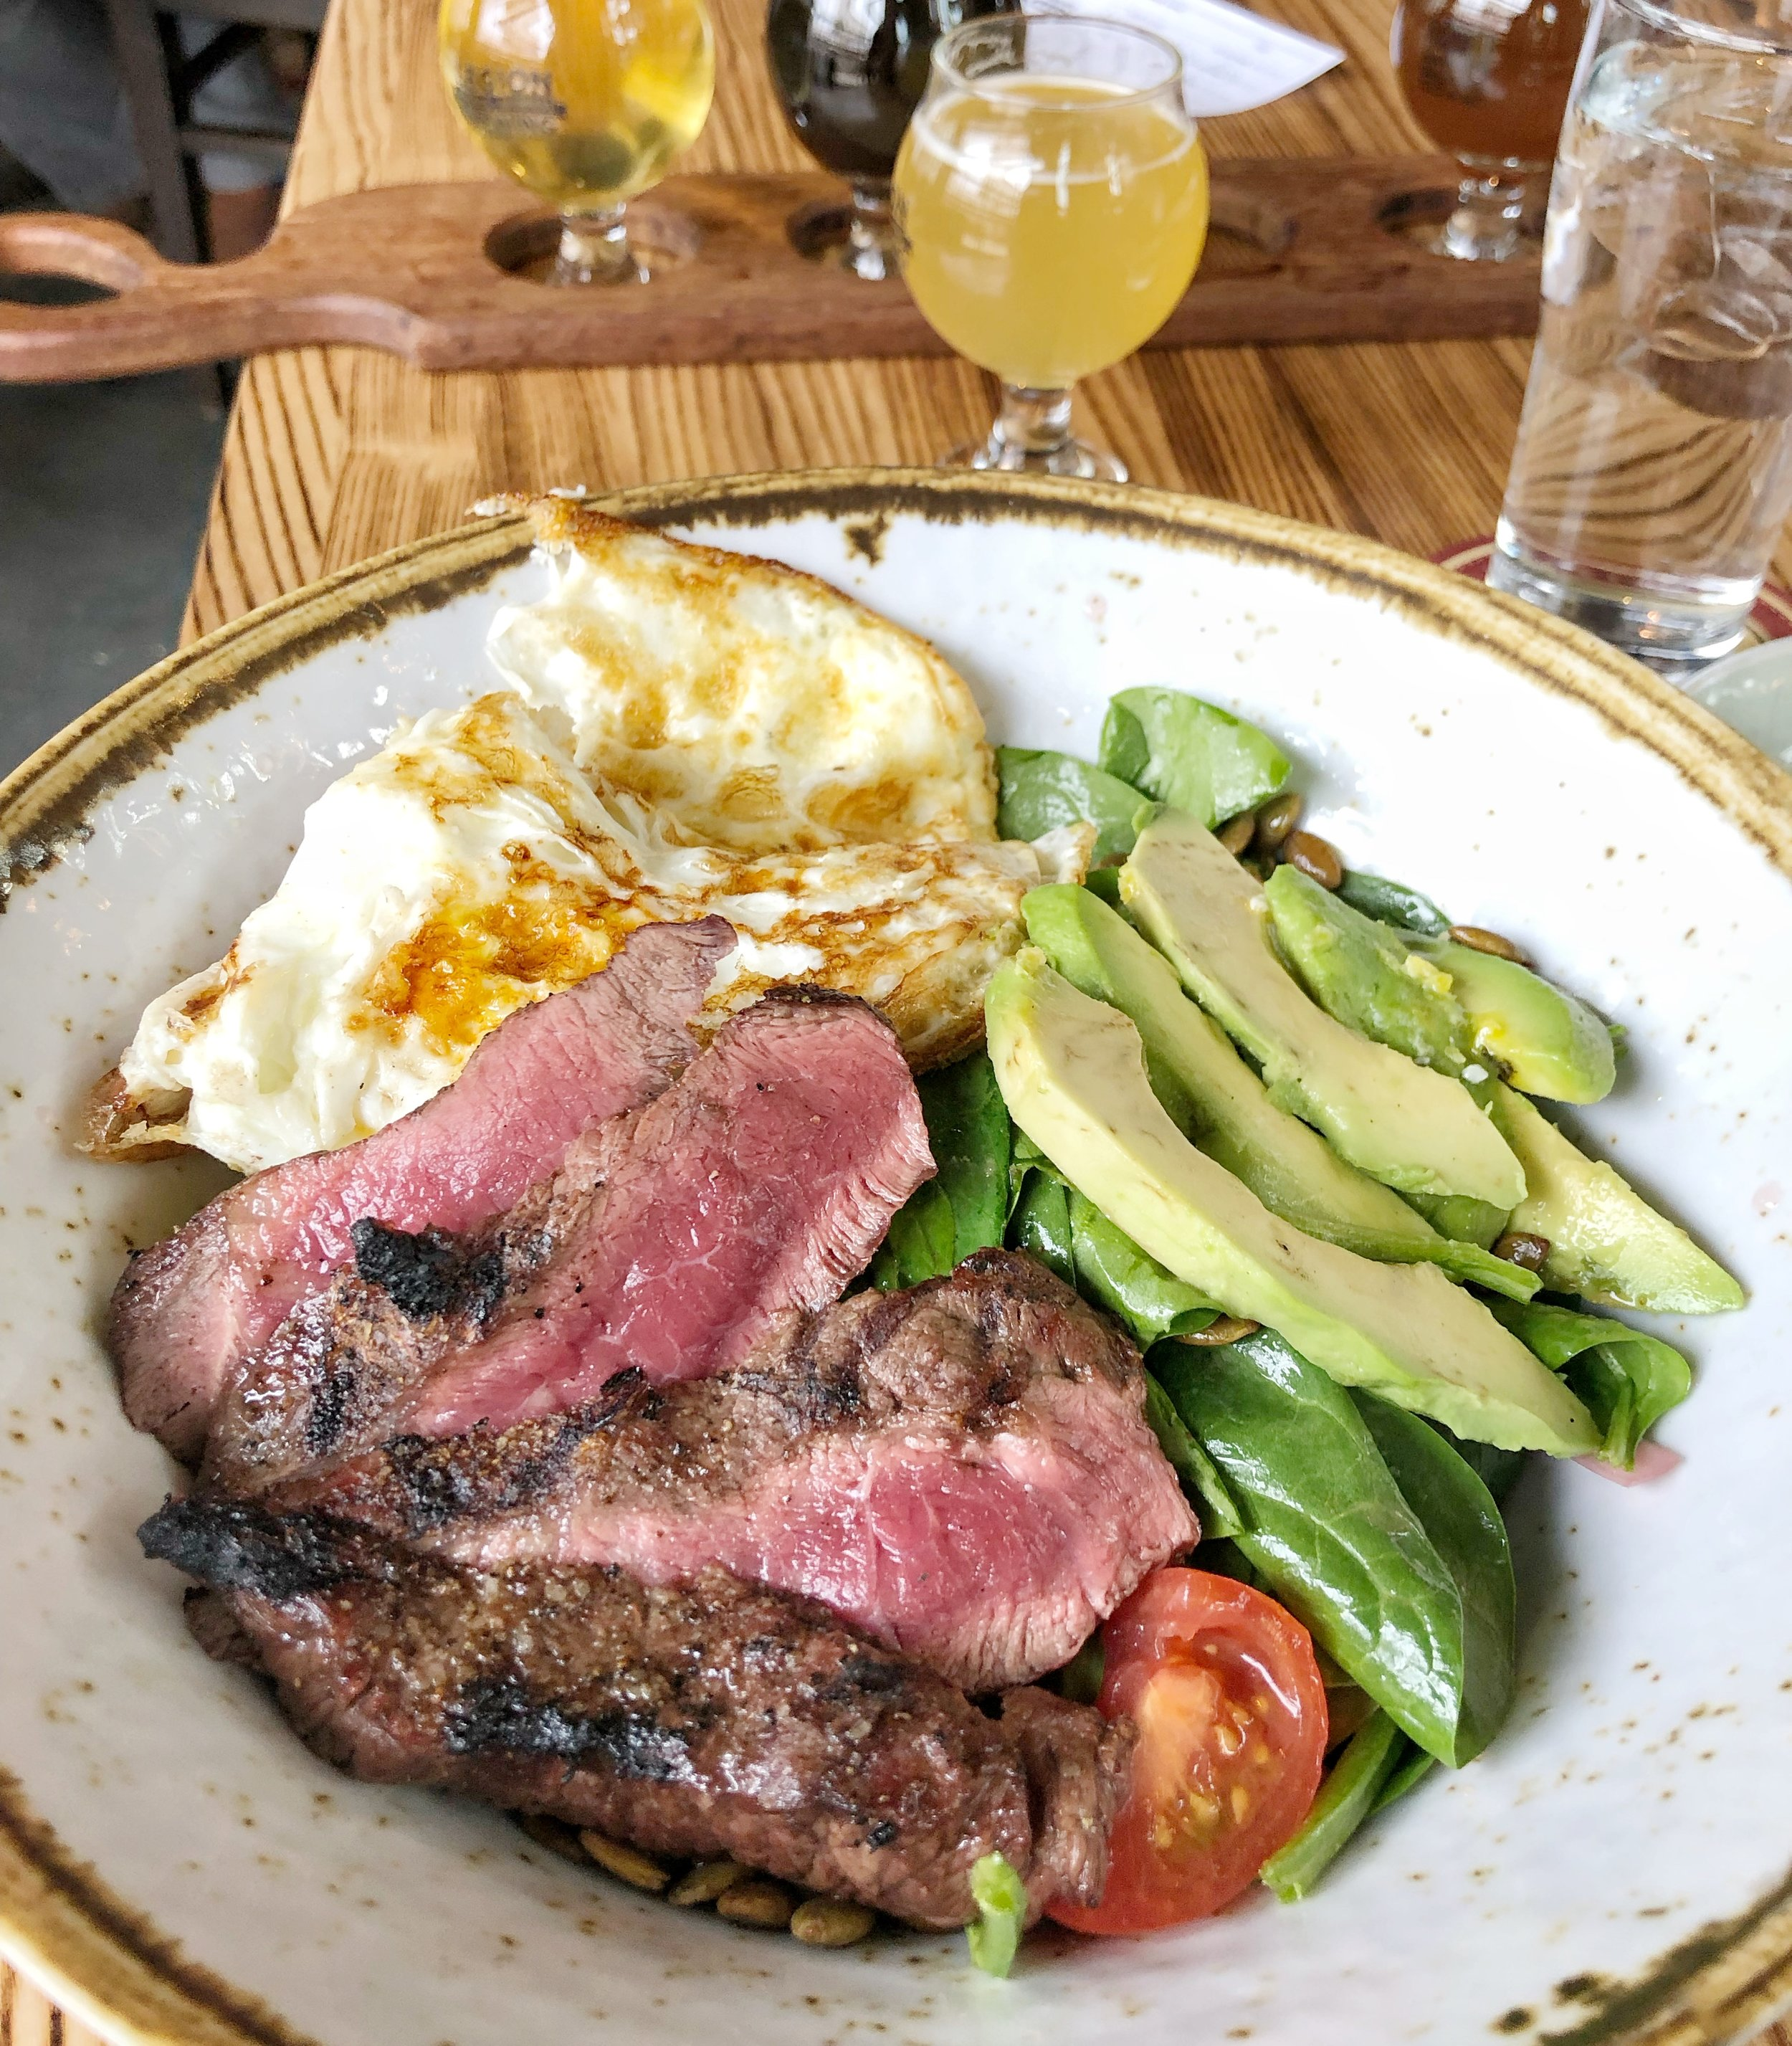 Baby Spinach & Avocado Salad With Steak - Fresh baby spinach, ripe avocado, Campari tomatoes, pickled red onion, toasted pumpkin seeds with an orange lime dressingLove the amount of avocados and eggs on the menu. I felt so strong after this brunch, like I could lift a car off a baby (or a baby pug). And now steak! My protein cup runneth over. I would order this again, but I would like to sub out the spinach for another lettuce, because I firmly believe that spinach only belongs in a smoothie and/or out of my life forever.